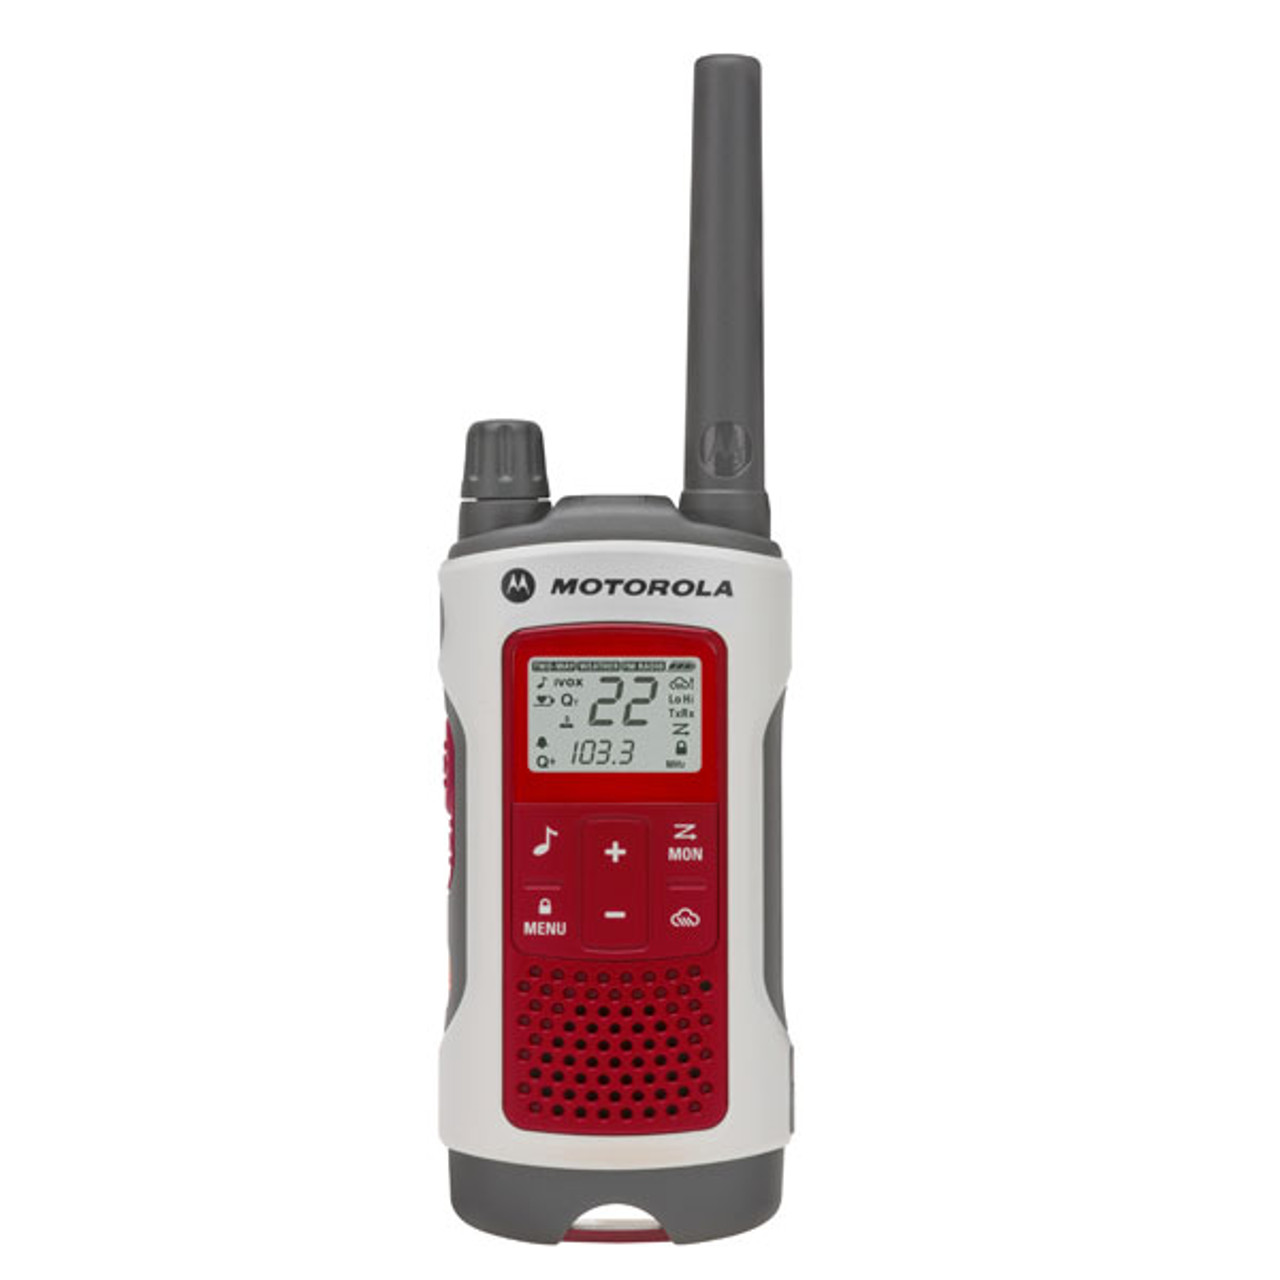 Motorola T480 Talkabout FRS GMRS Radio